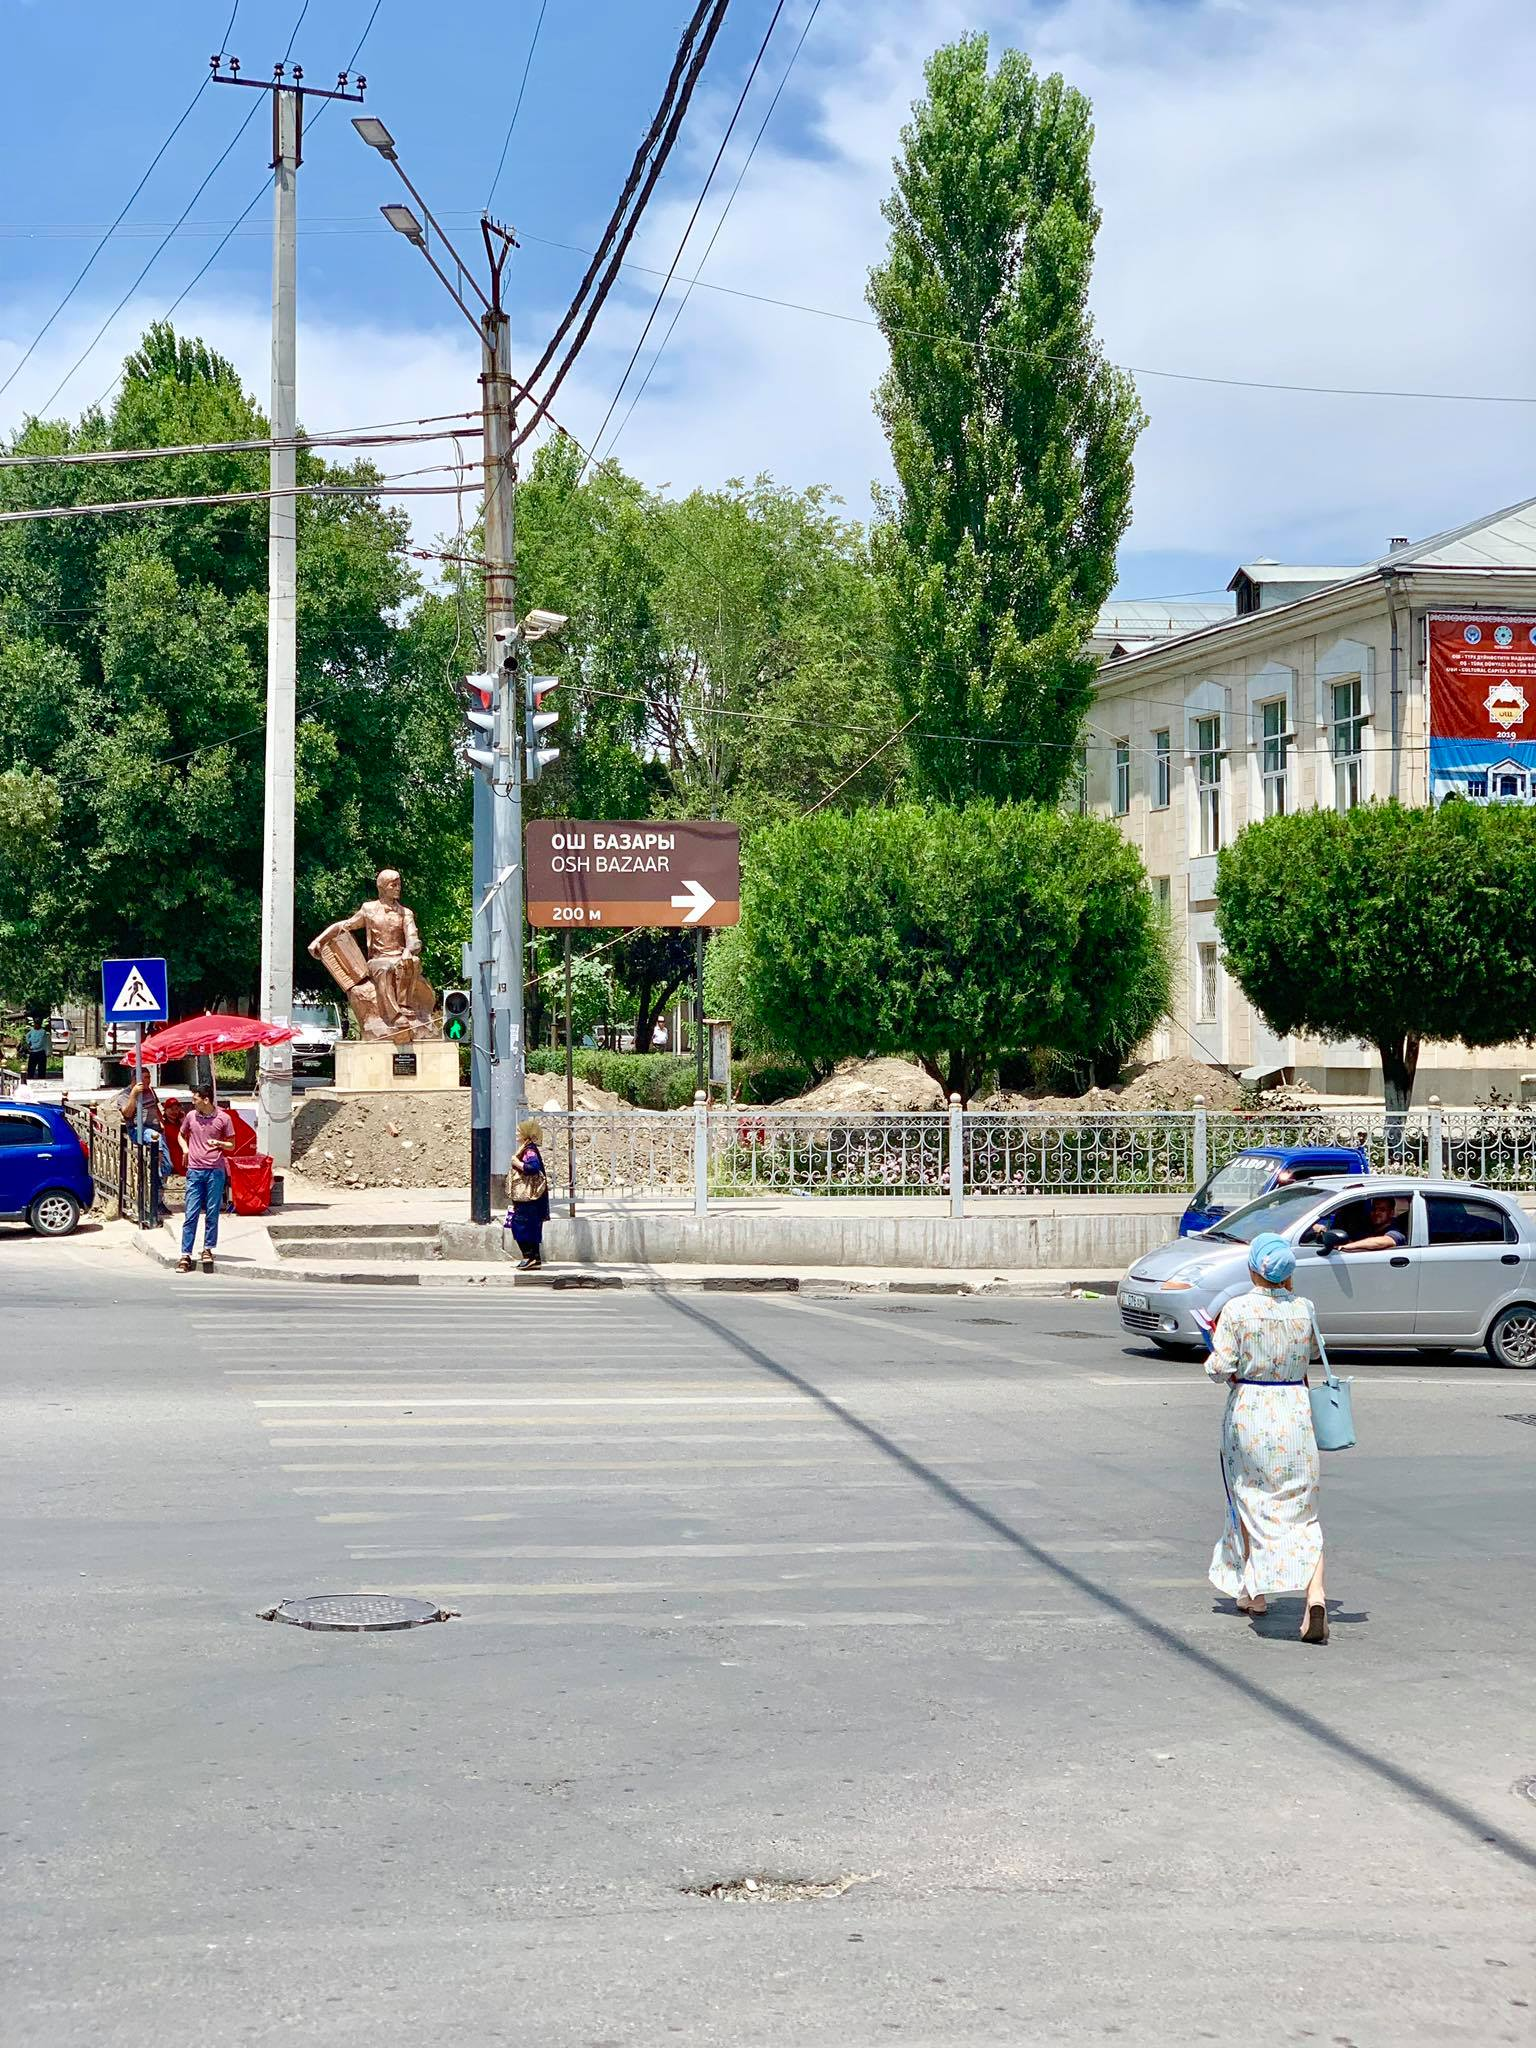 Kach Solo Travels in 2019 Exploring KYRGYZSTAN with Destination Pamir19.jpg